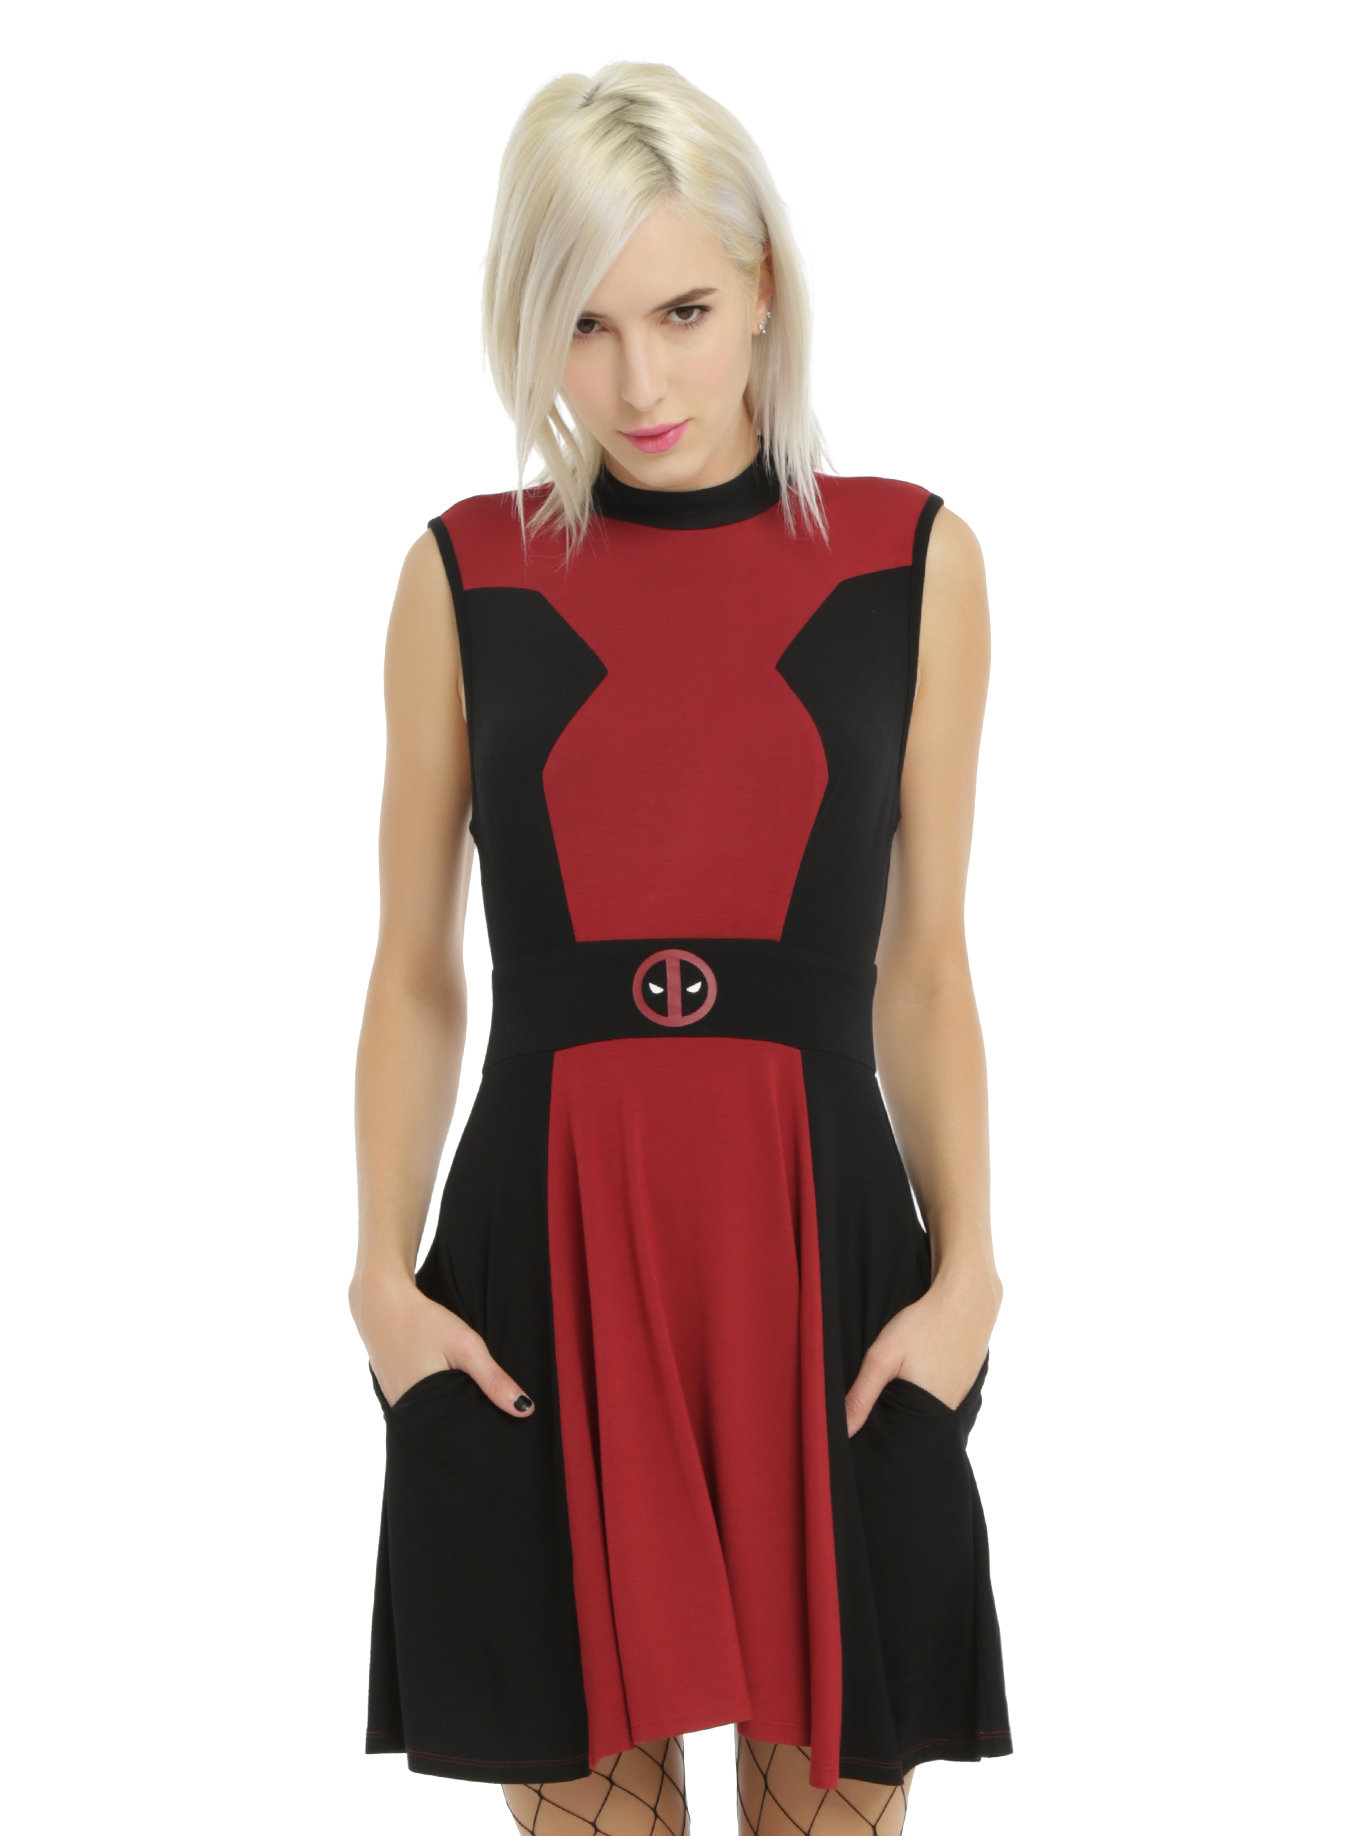 1878b214c3 Check Out This Marvel DEADPOOL Cosplay Dress from Hot Topic — GeekTyrant